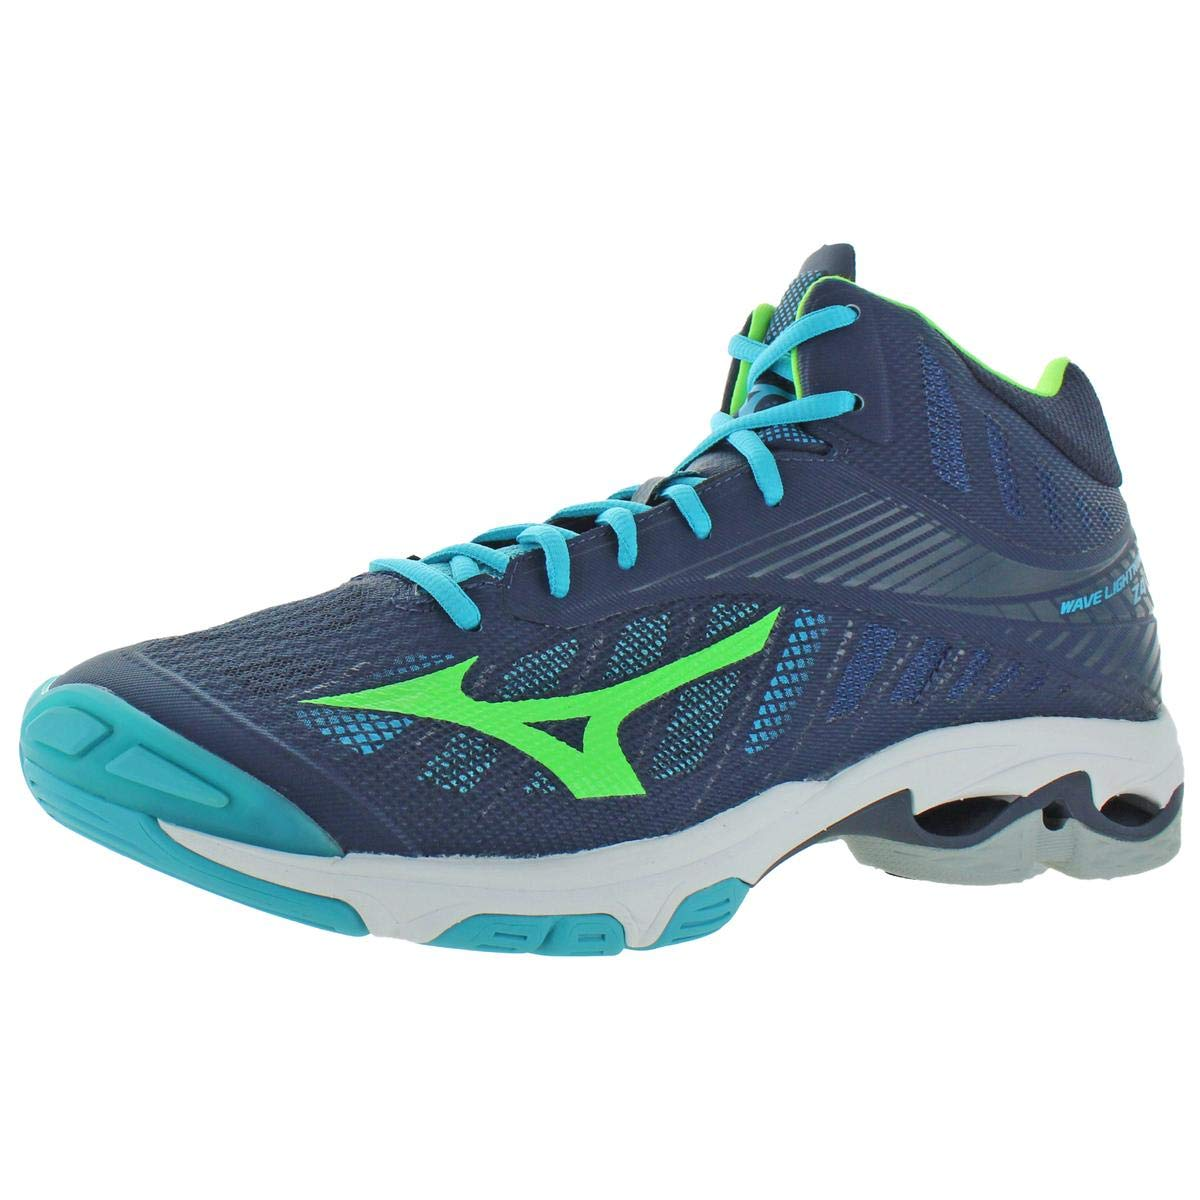 Mizuno Mens Wave Lightning Z4 Mid Lace-Up Volleyball Shoes Navy 14 Medium (D) by Mizuno